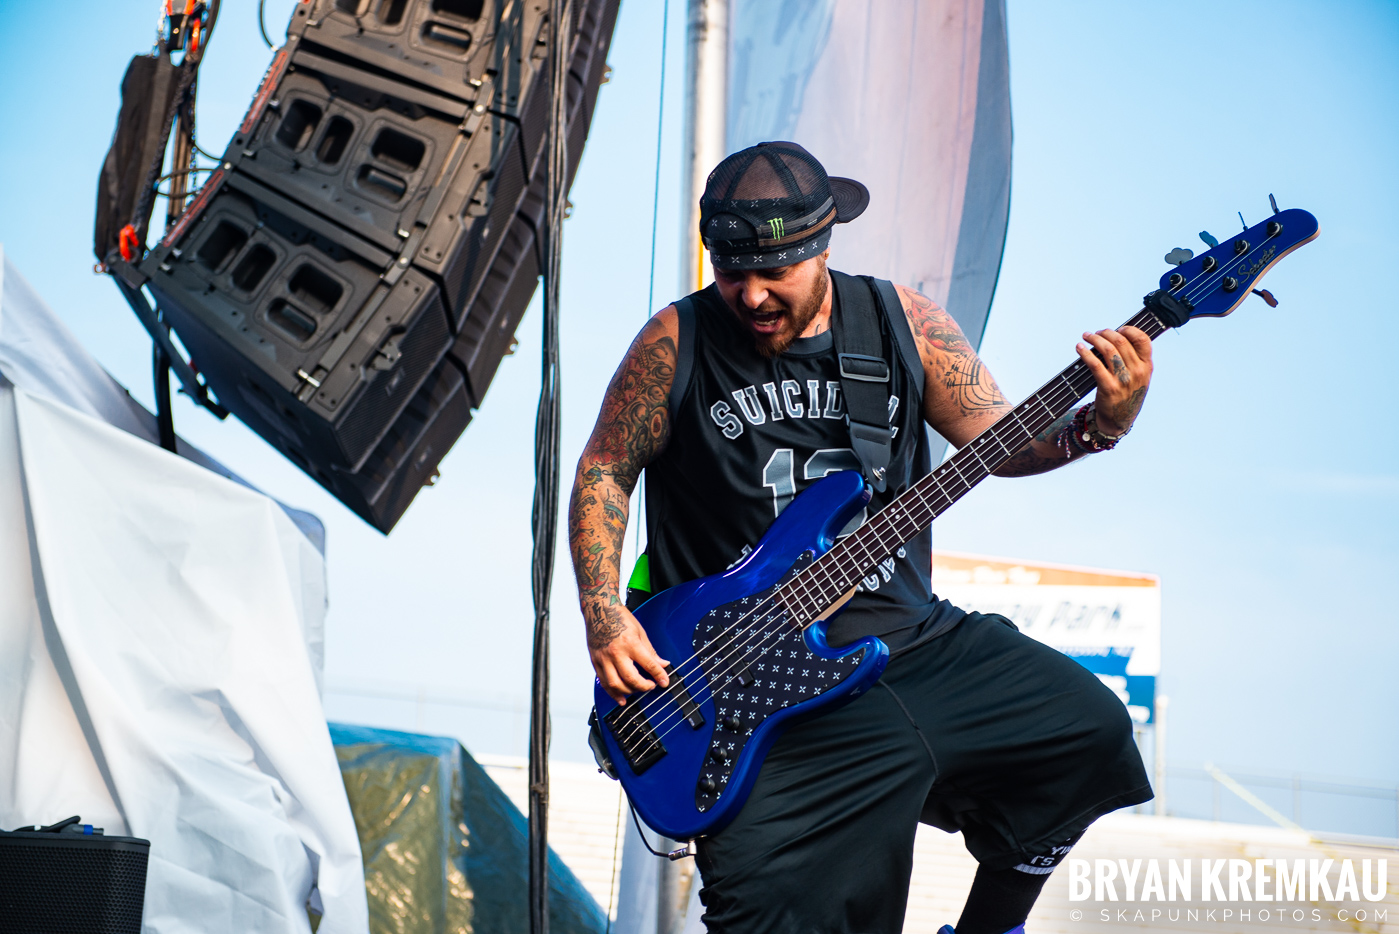 Suicidal Tendencies @ The Bash Music & Craft Beer Festival, Old Bridge Township Raceway Park, Englishtown, NJ - 6.2.19 (28)